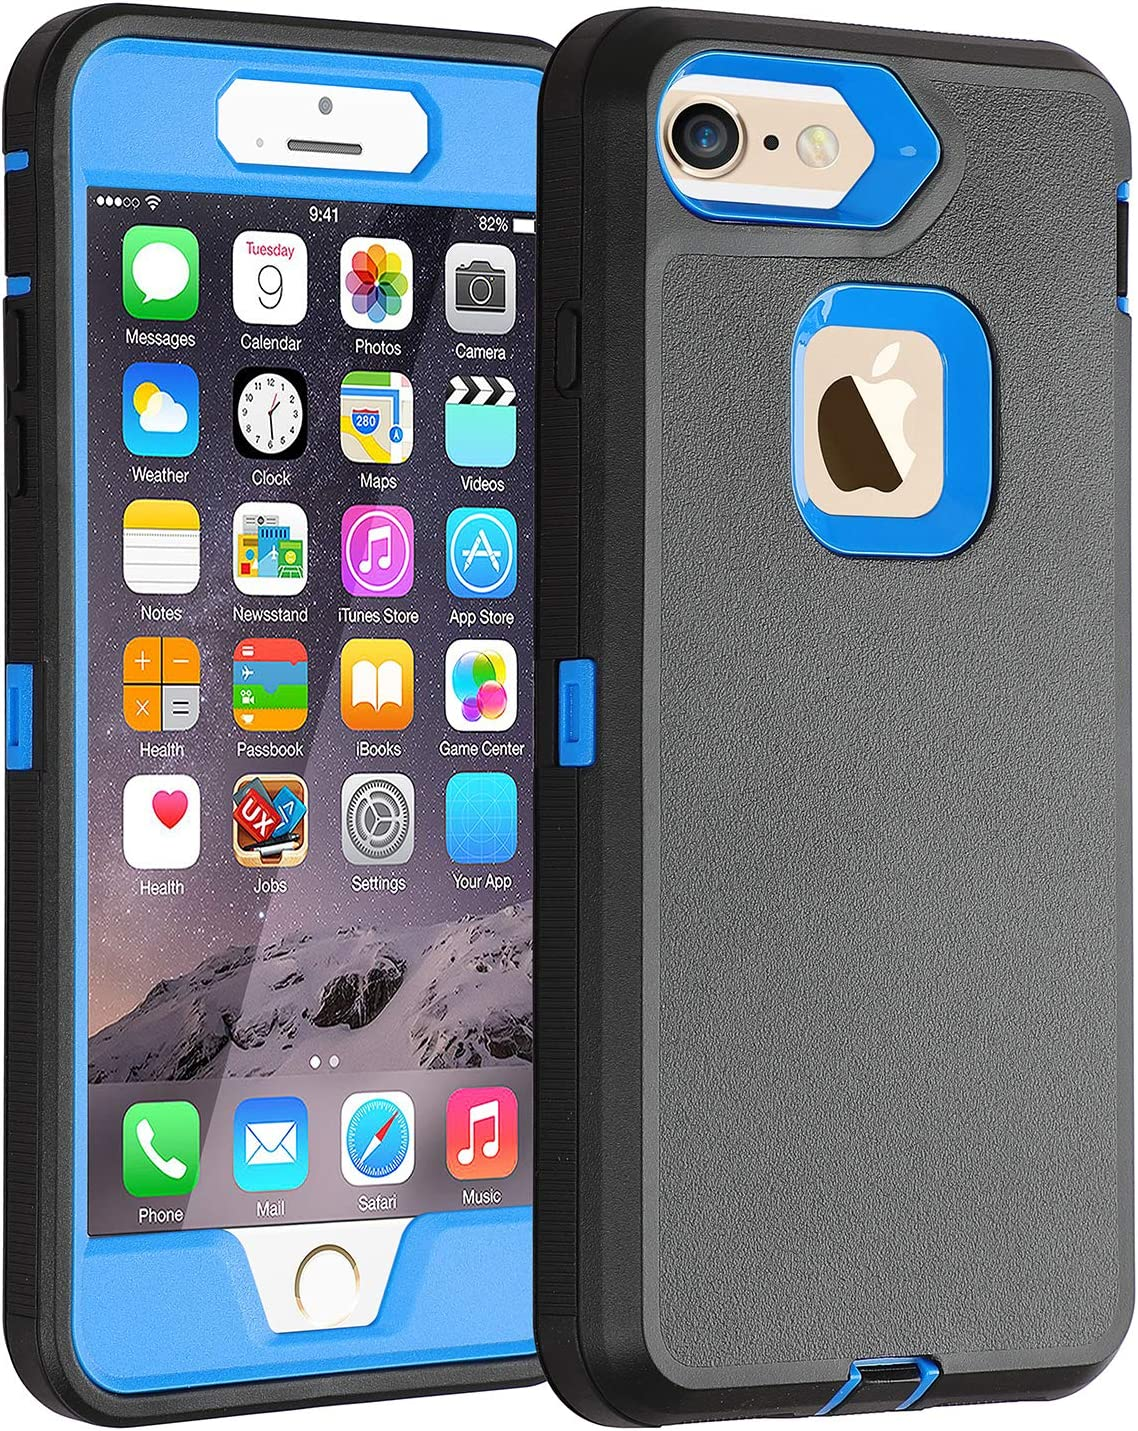 Co-Goldguard Case for iPhone 6s Plus/6 Plus Heavy Duty 3 in1 Built-in Screen Protector Cover Dust-Proof Shockproof Scratch Resistant Shell Compatible with Apple iPhone 6s+/6+,Black&Blue